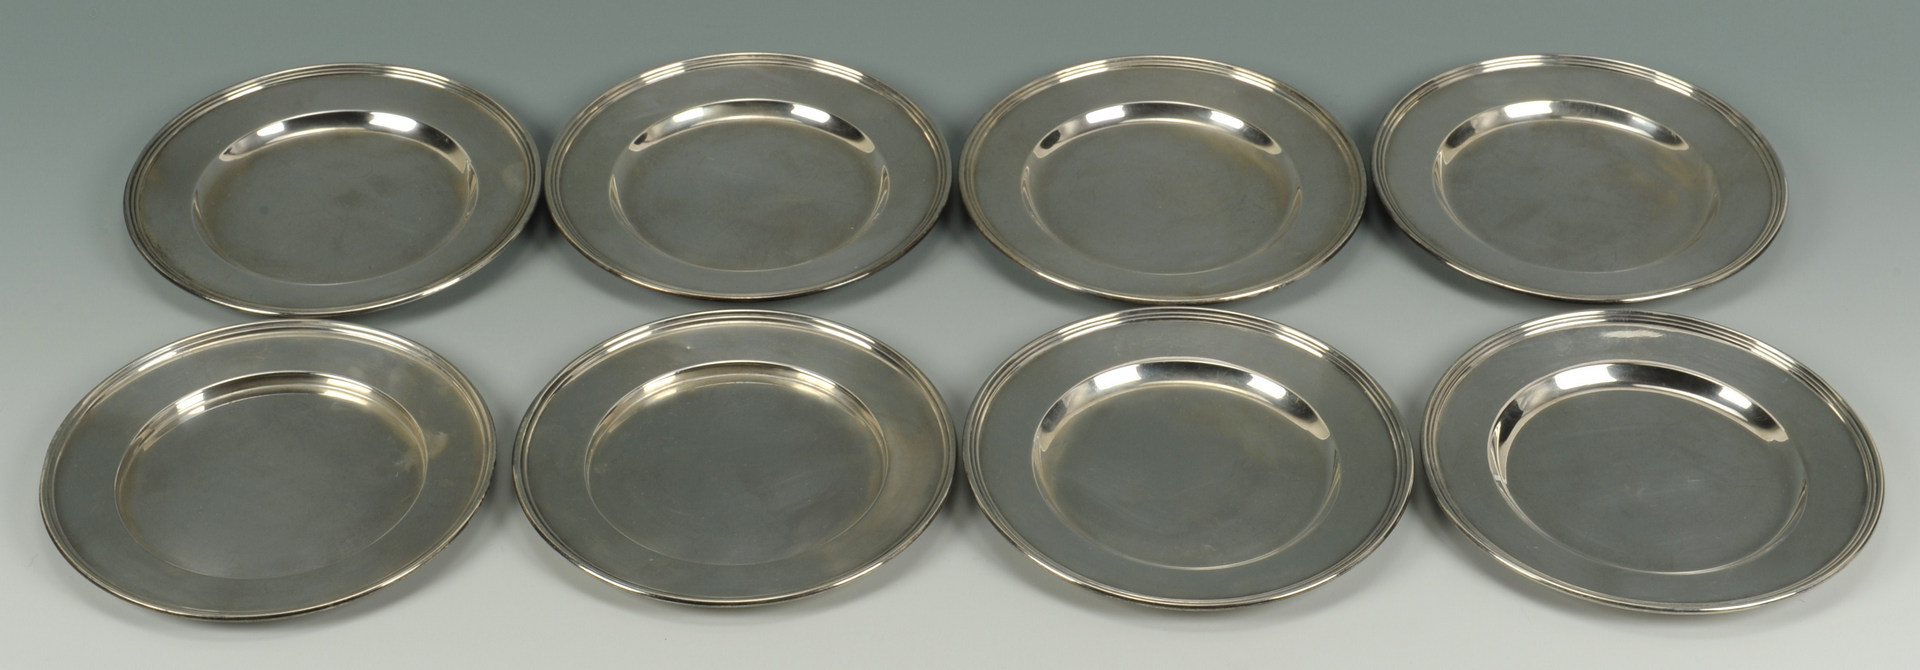 Lot 420: 8 Sterling Bread Plates by International and Fishe